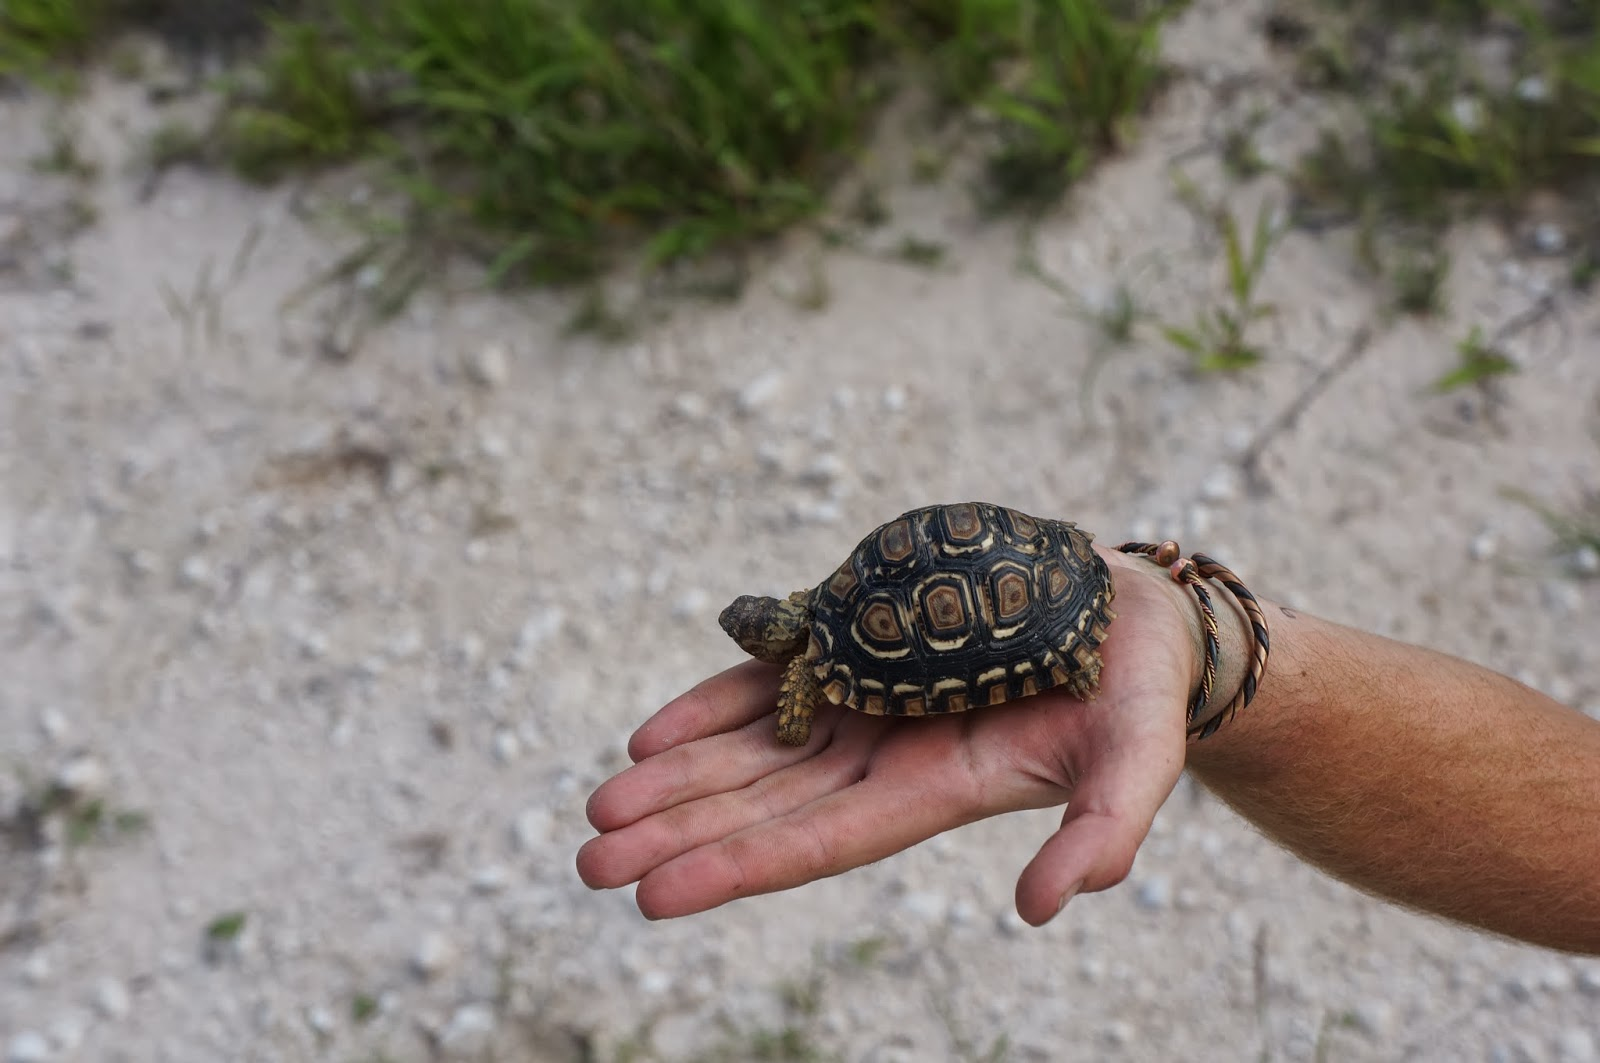 Baby Leopard Tortoise | Health, Cancer, Liver, and Surgery